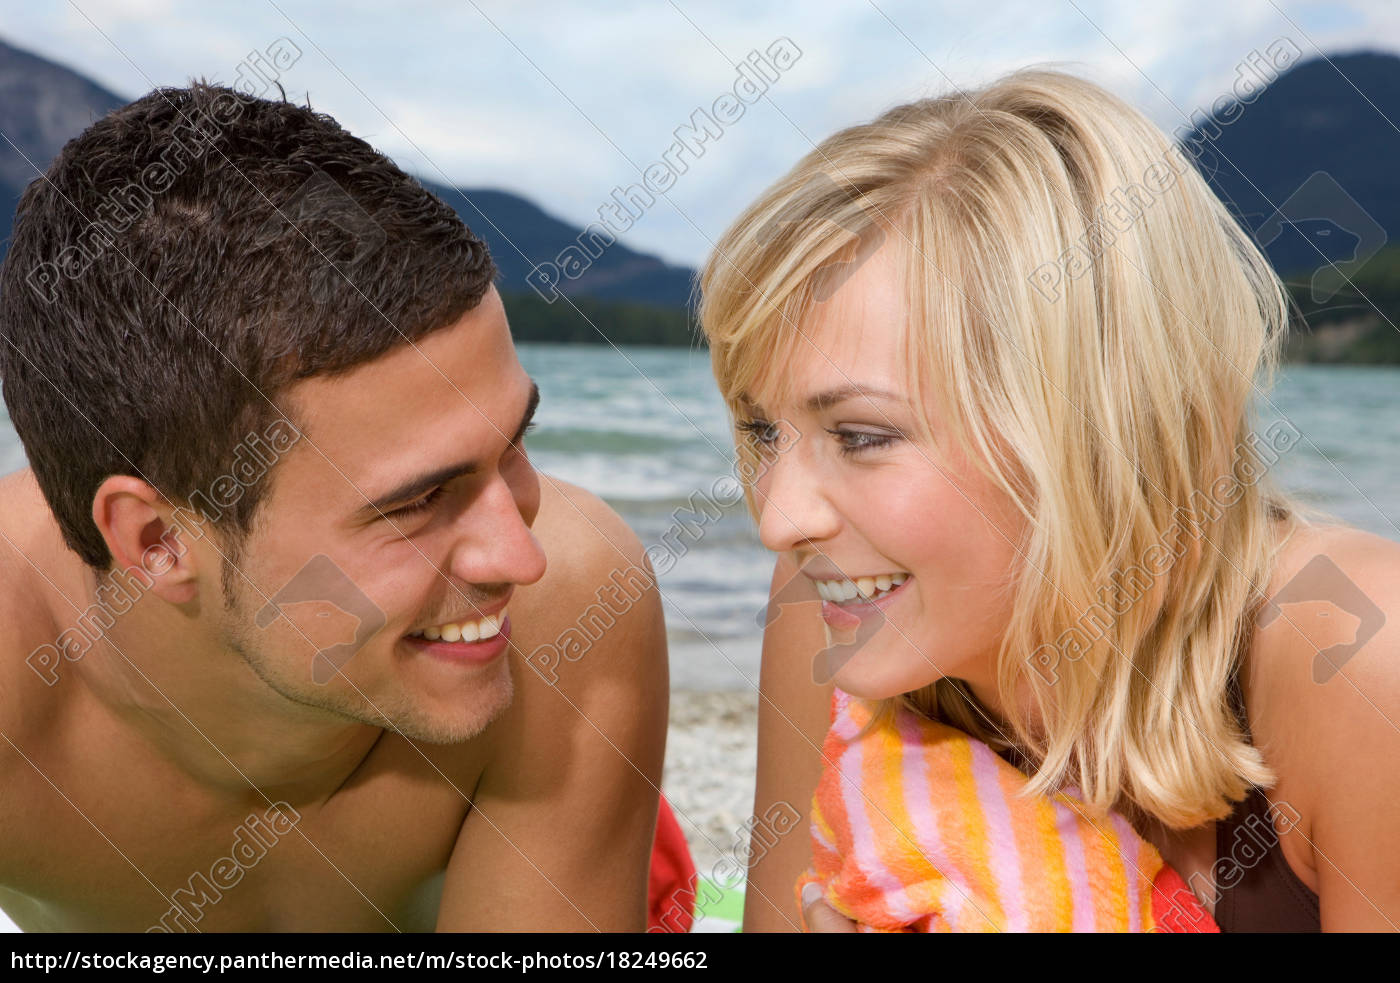 a, young, couple, smiling, at, each - 18249662